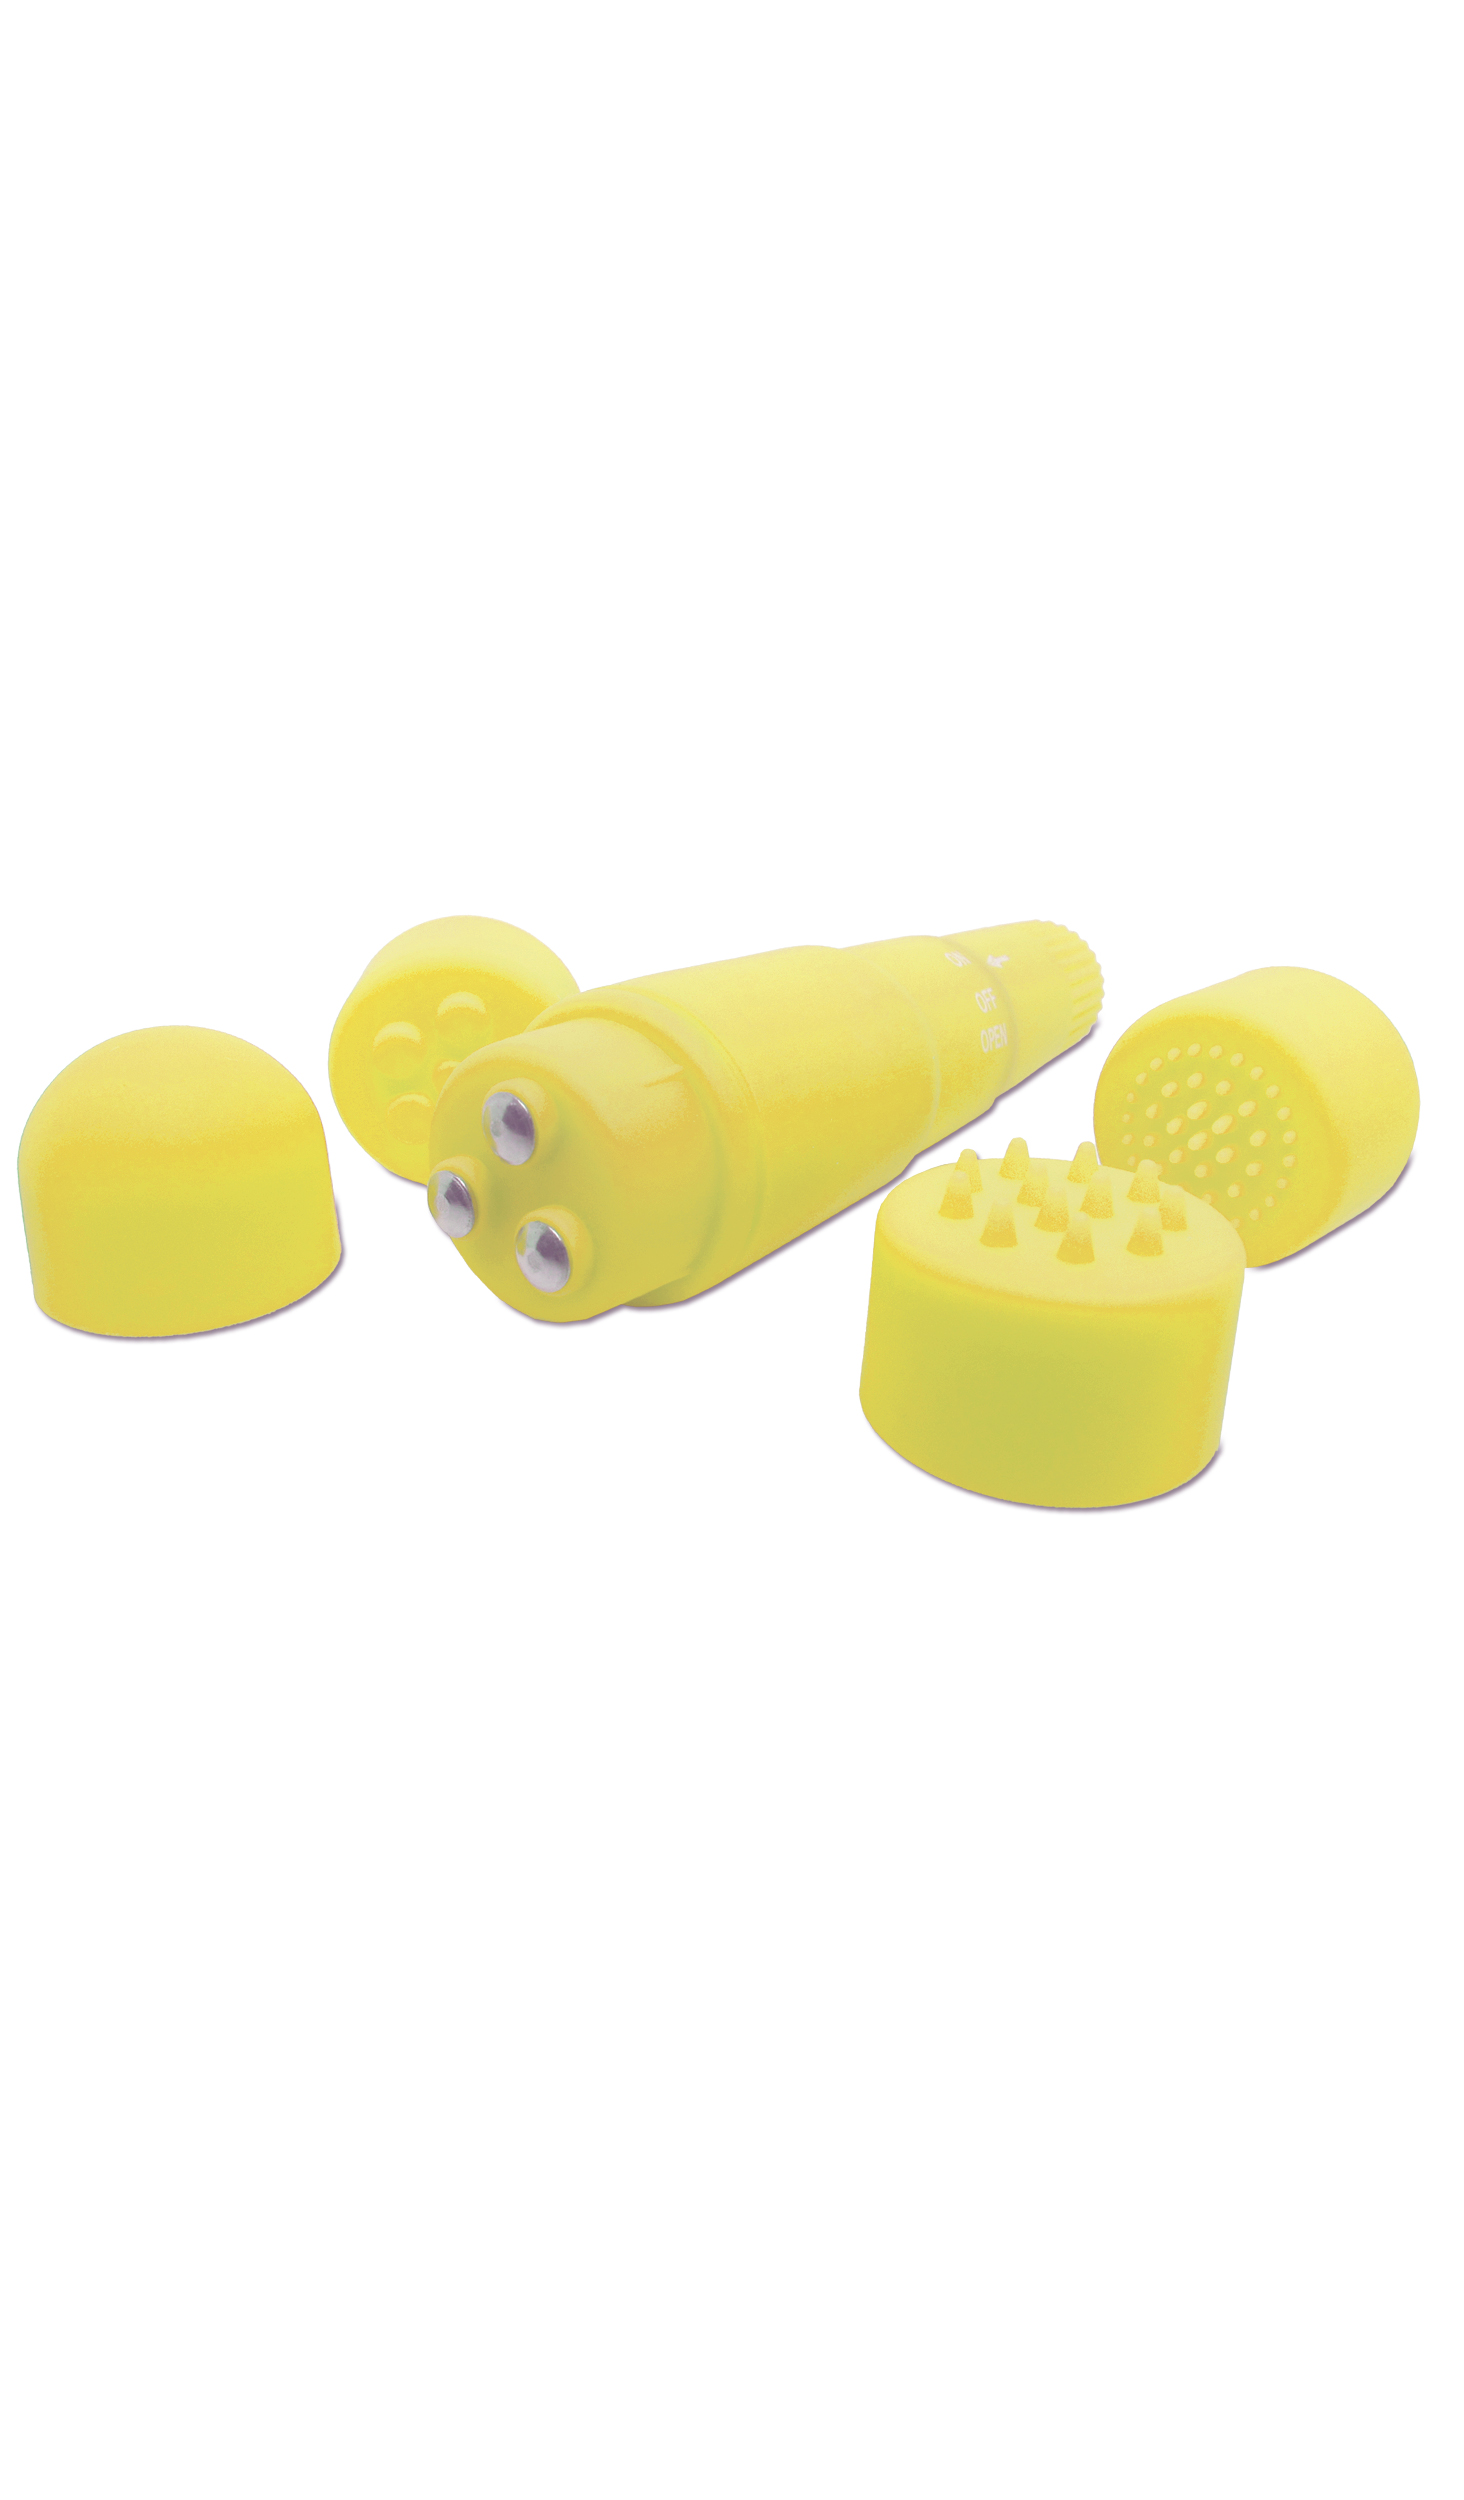 NEON LUV TOUCH MINI MITE YELLOW